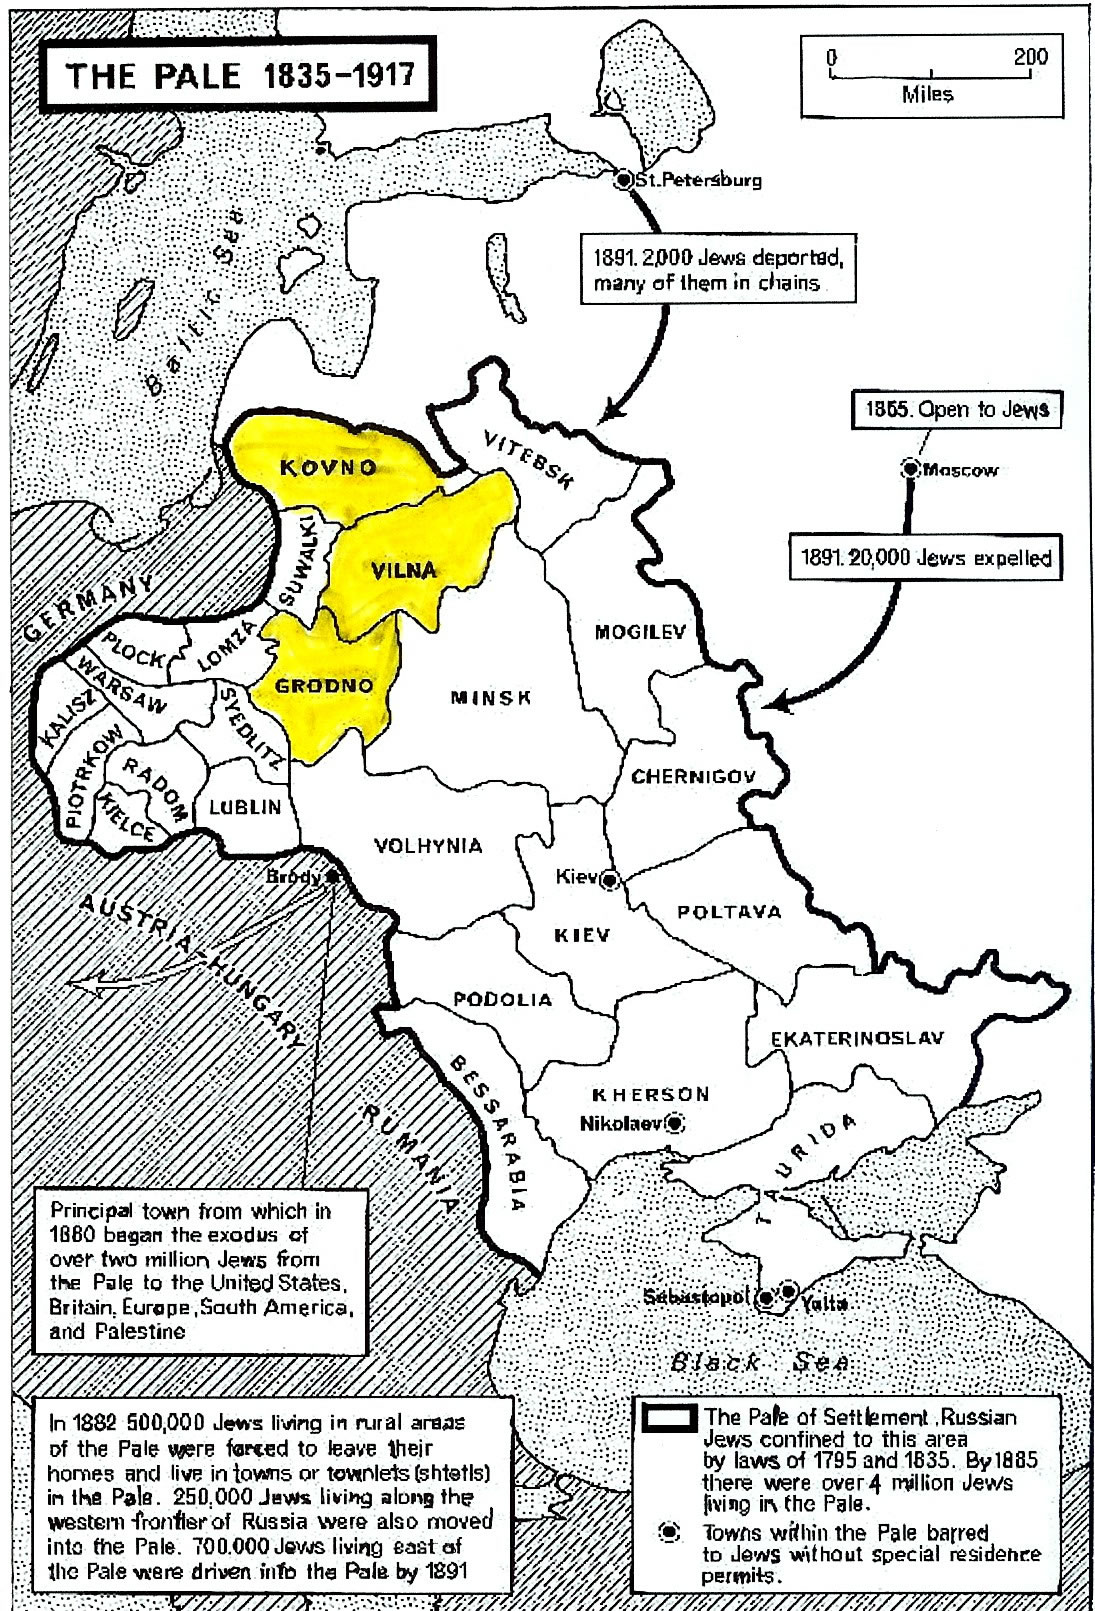 a%20The%20Pale%201835-1917_jpg Galicia Eastern Europe Map on turkey eastern europe map, galicia eastern europe flag, serbia eastern europe map, italy eastern europe map, bavaria germany on europe map, poland and eastern europe map, latvia eastern europe map, lithuania eastern europe map, georgia eastern europe map, moravia eastern europe map, russia eastern europe map,